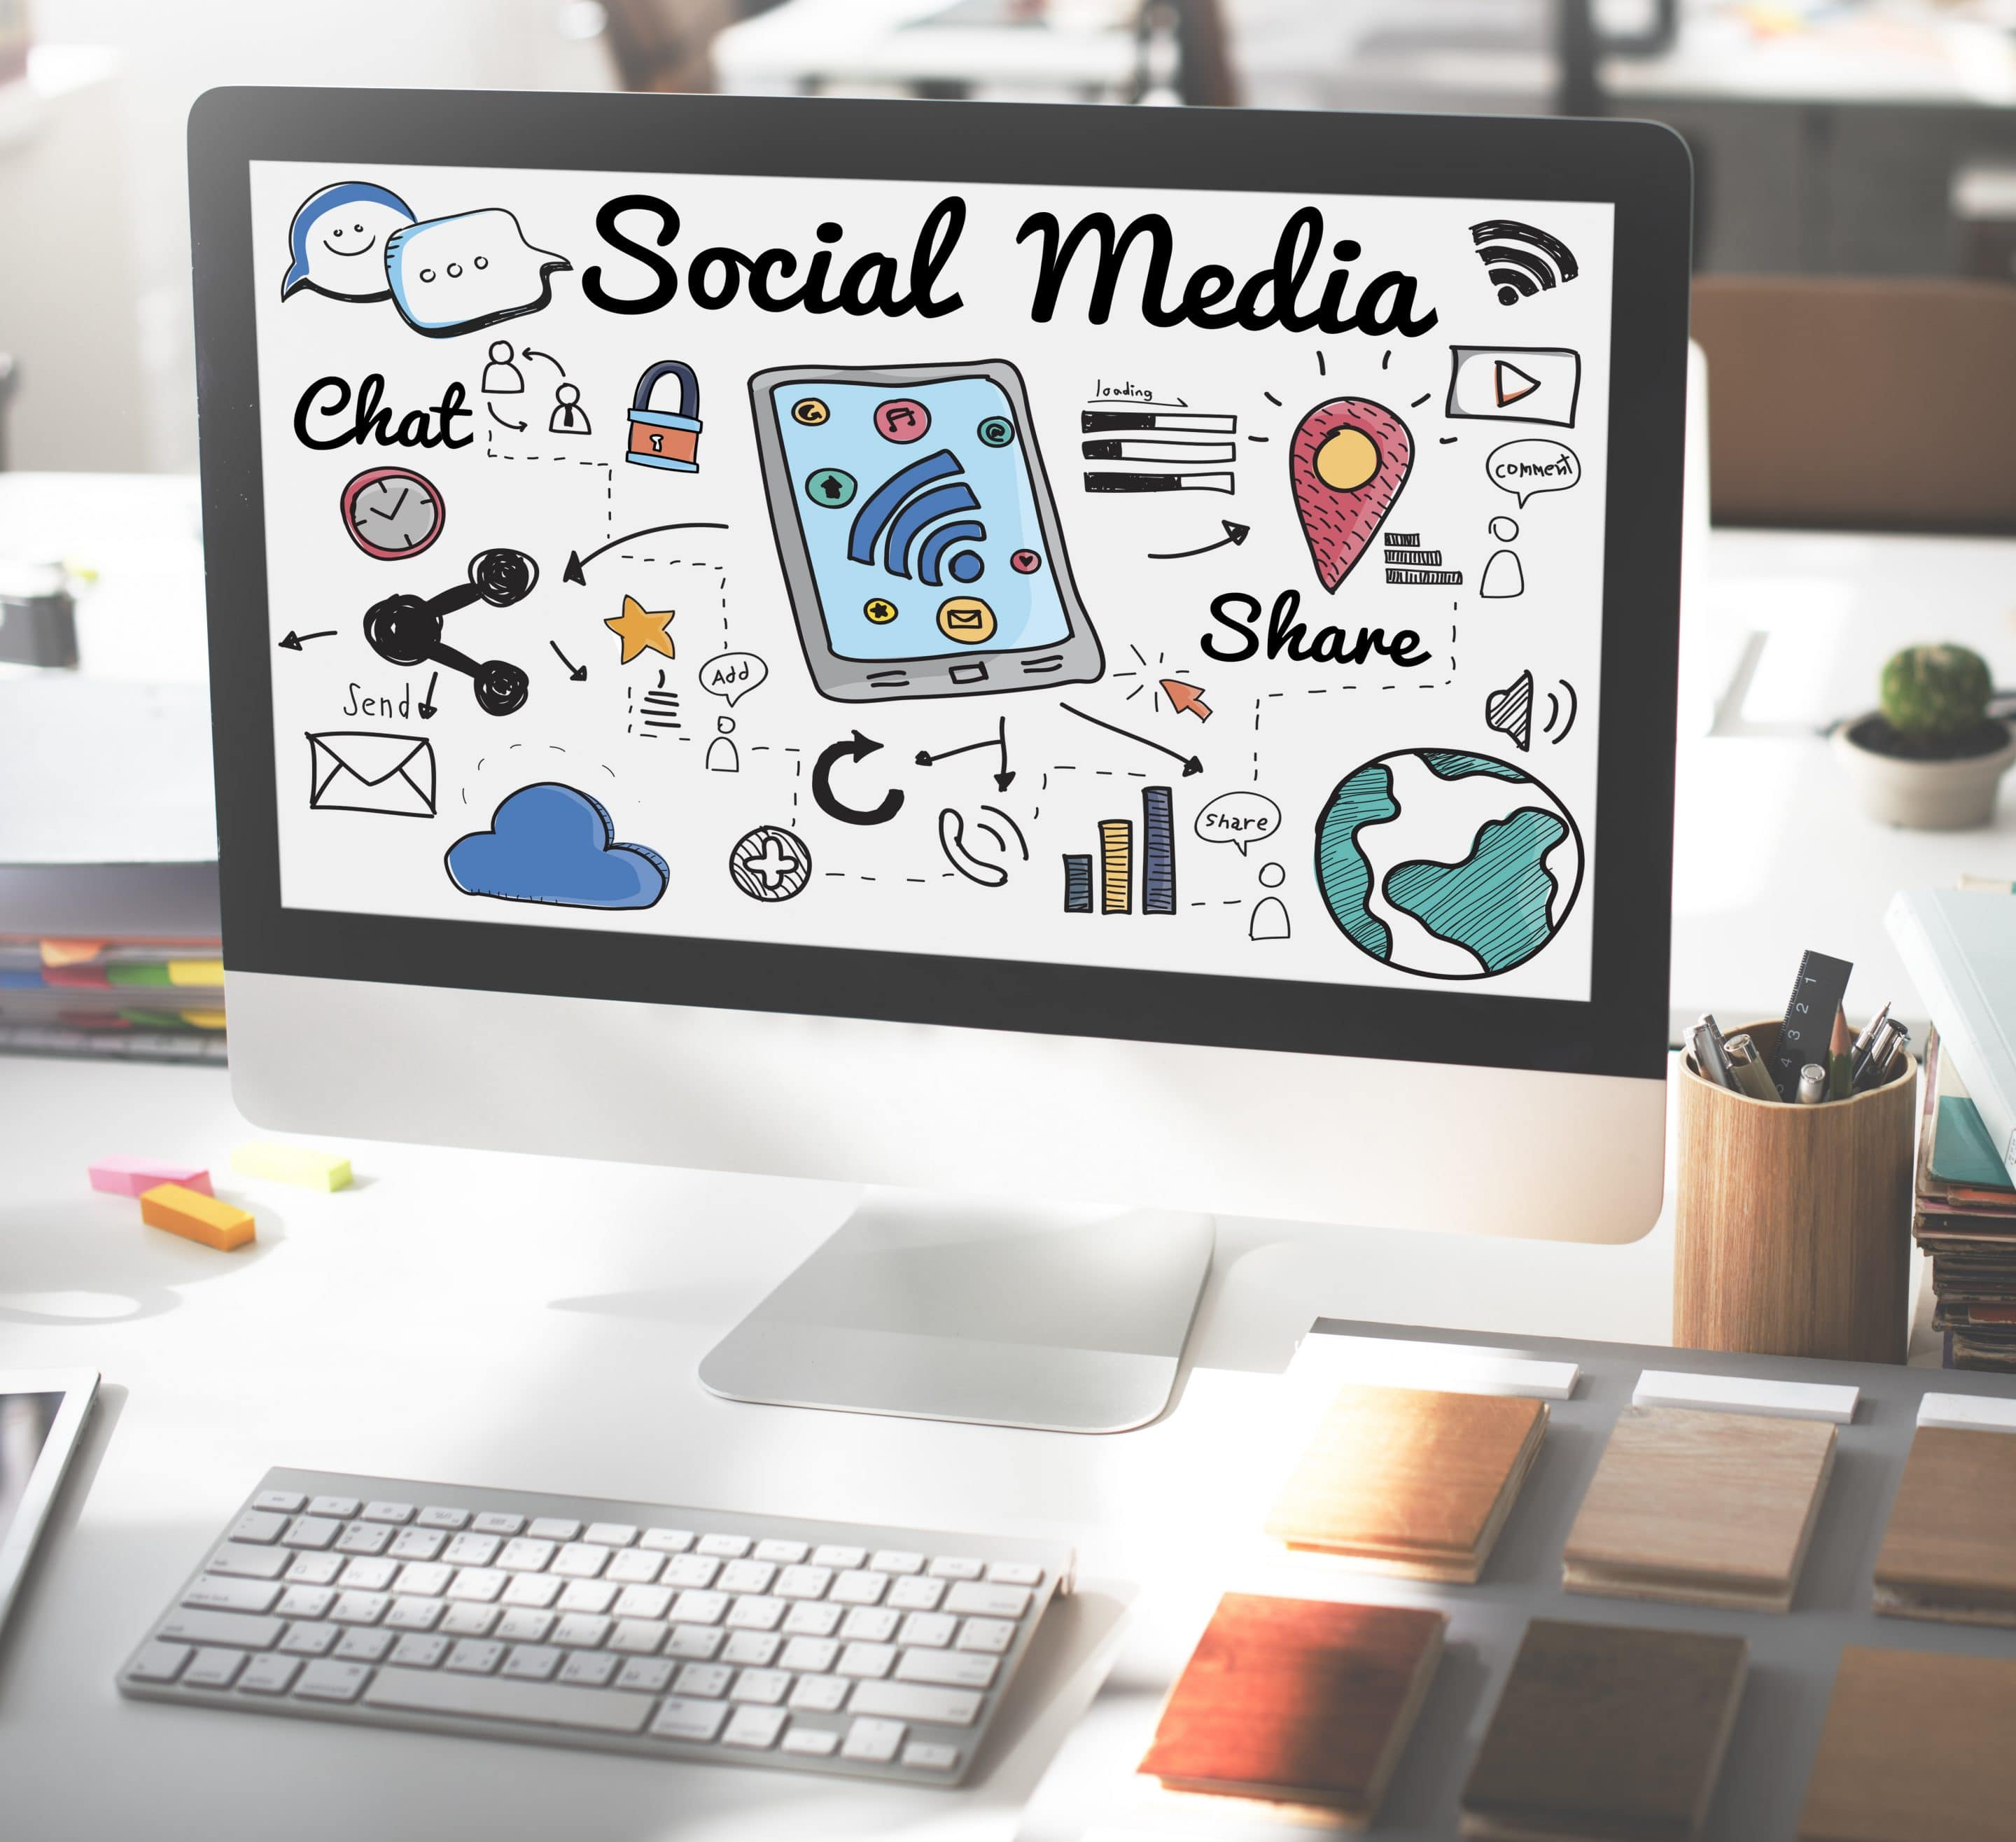 What Is The Right Length For A Social Media Post?